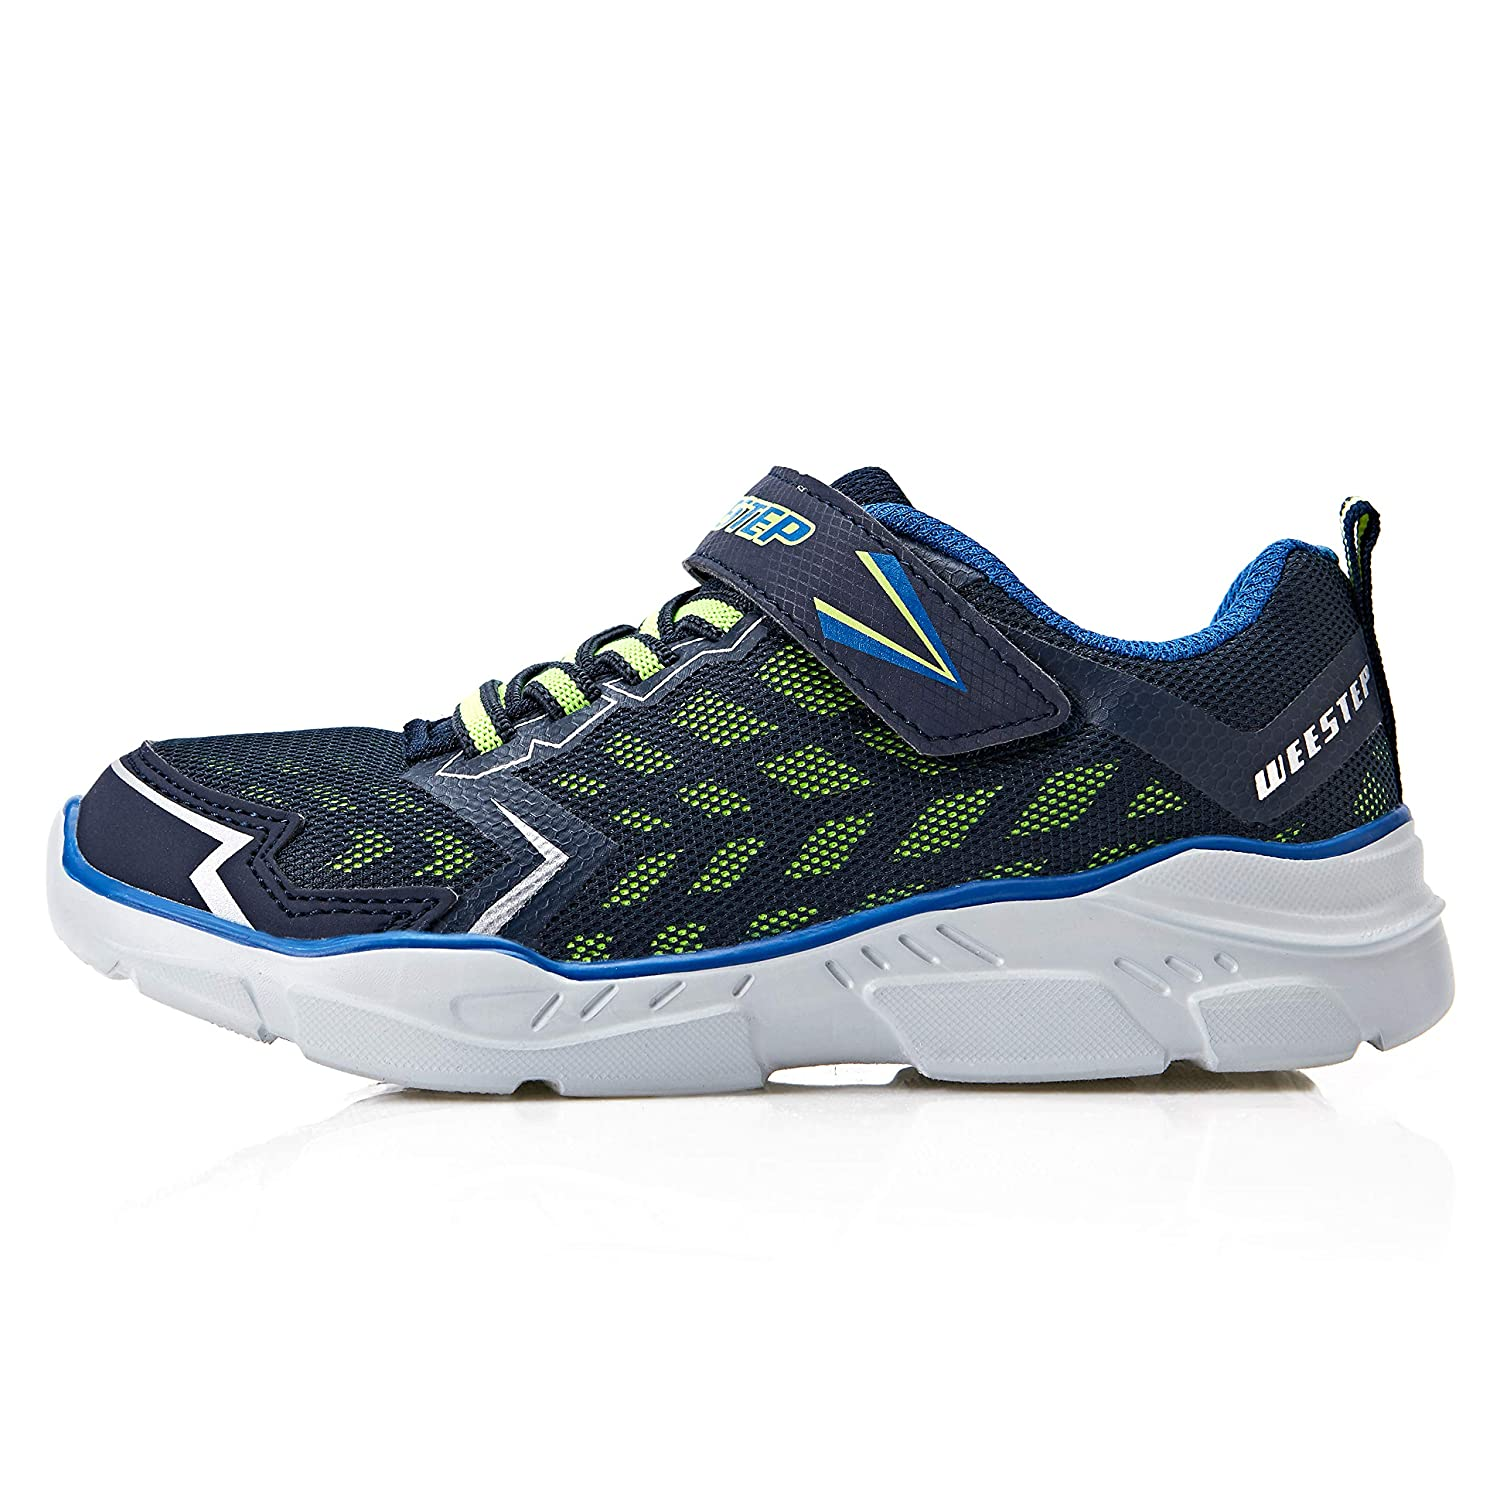 Running Cross Trainer Walking Athletic Outdoor Casual Shoes Weestep Boys Sport Sneakers Shoes Toddler Little Kids